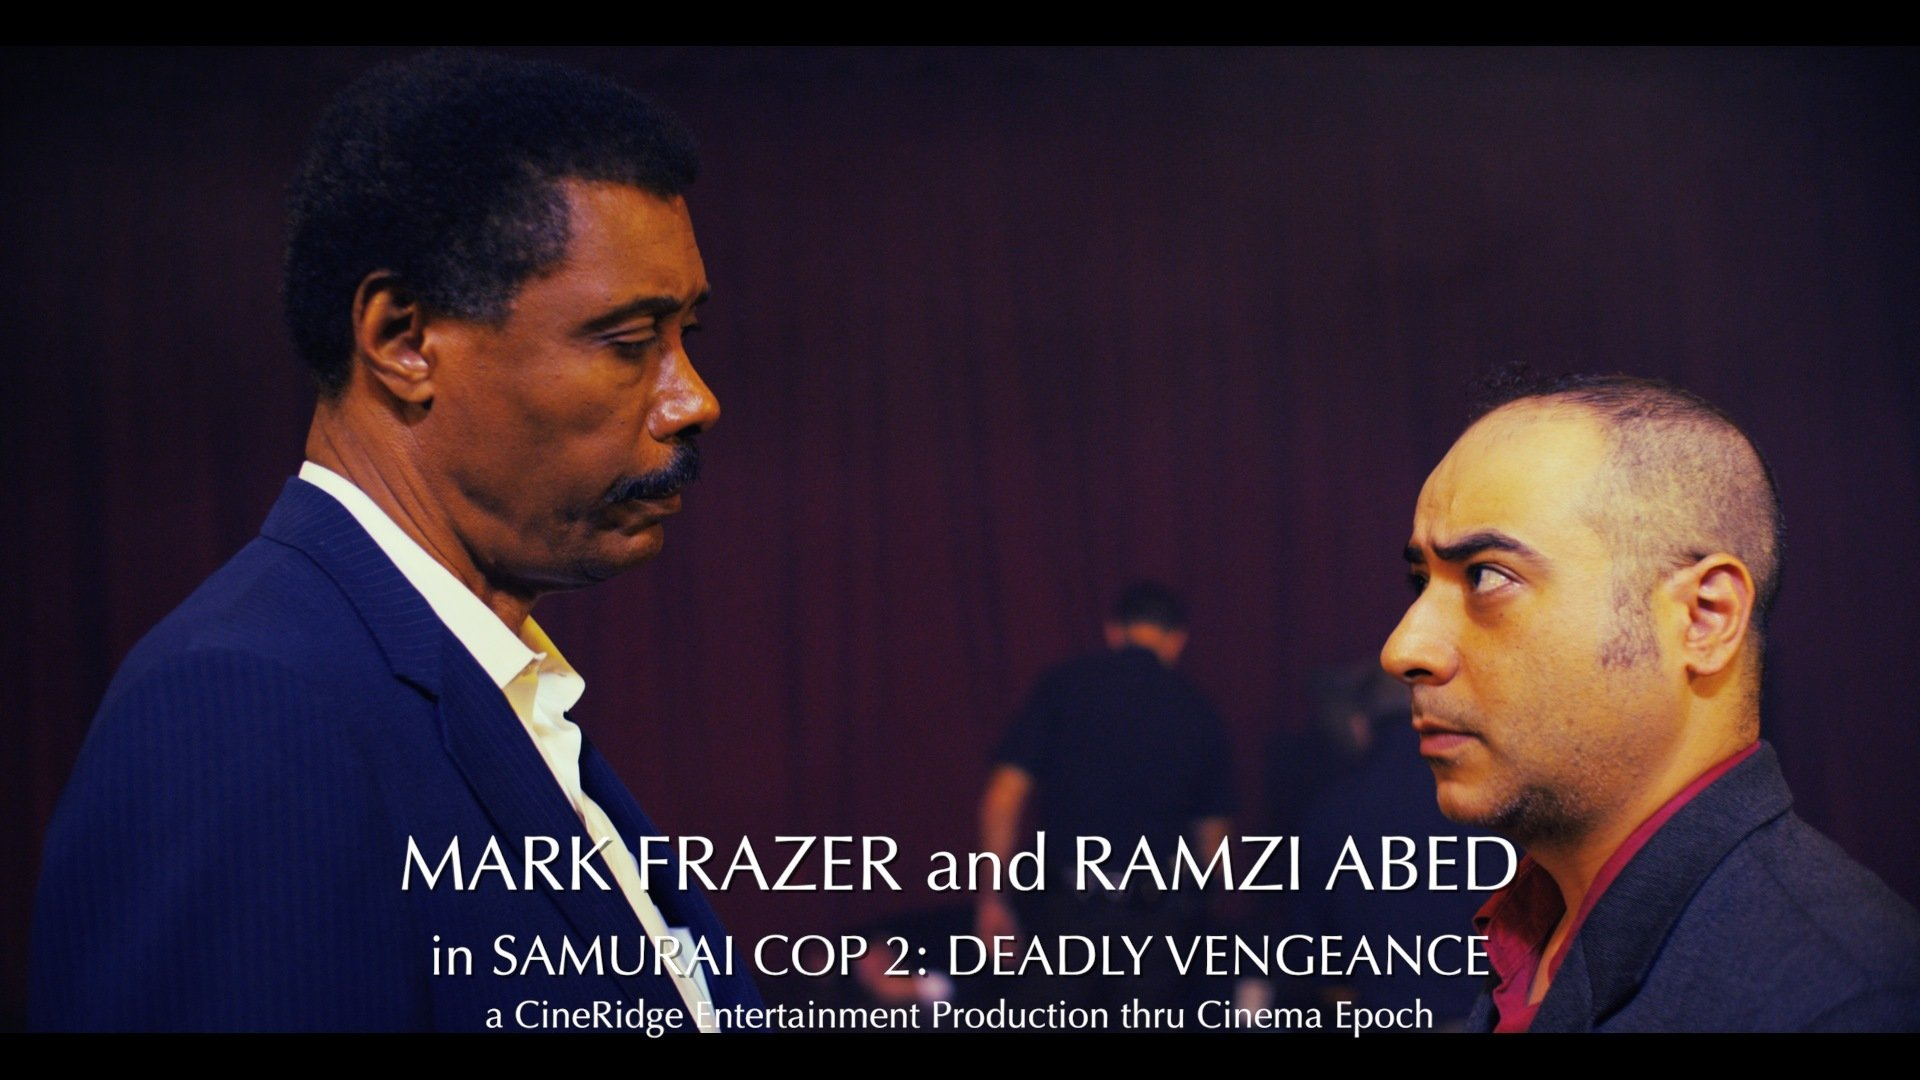 Mark Frazer and Ramzi Abed in SAMURAI COP 2: DEADLY VENGEANCE